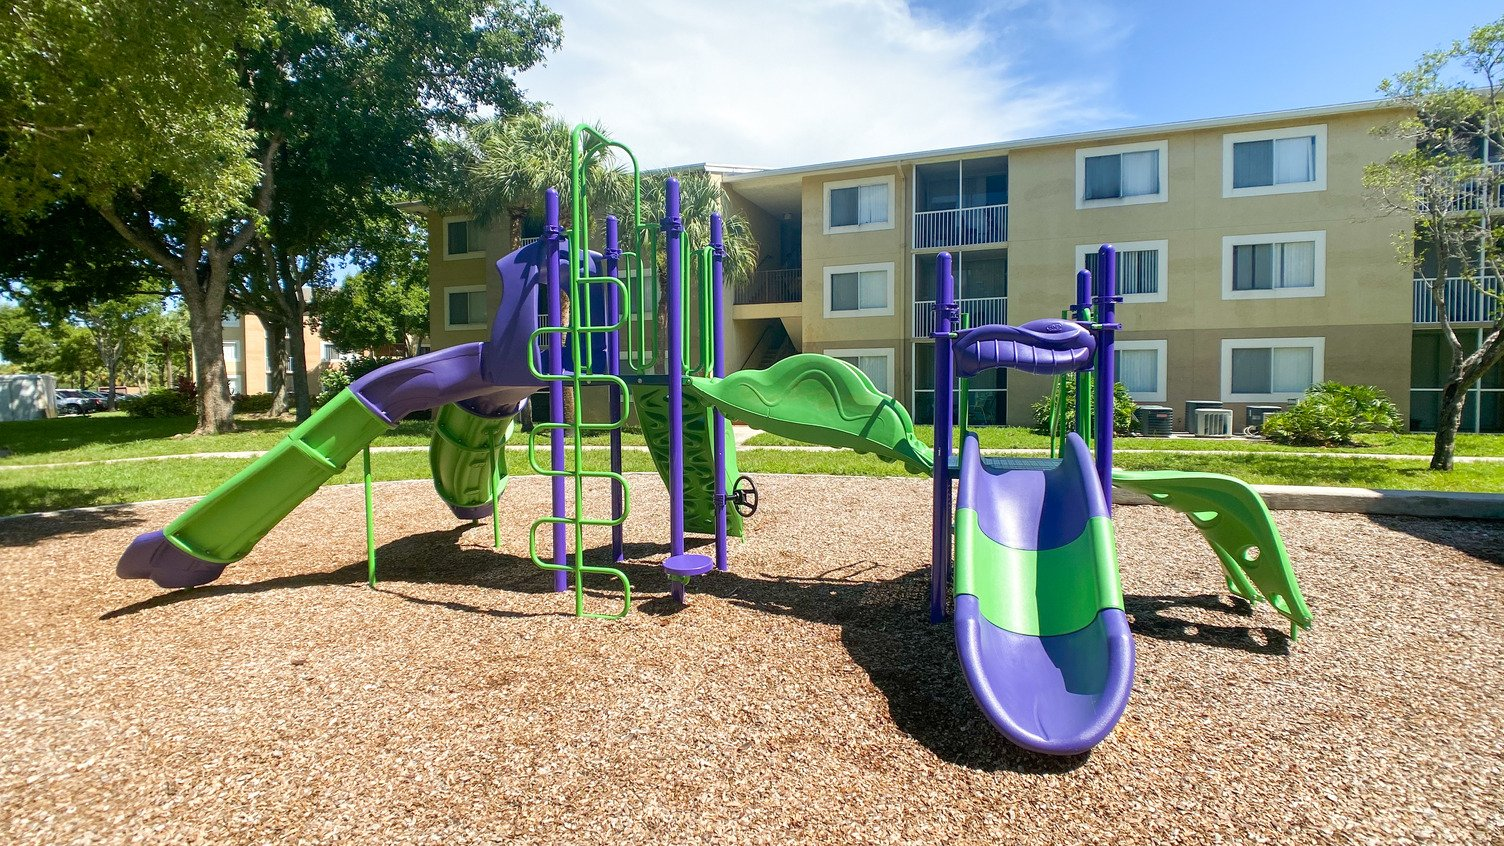 Purple and Green Playground on Mulch with Building Exterior in the Background